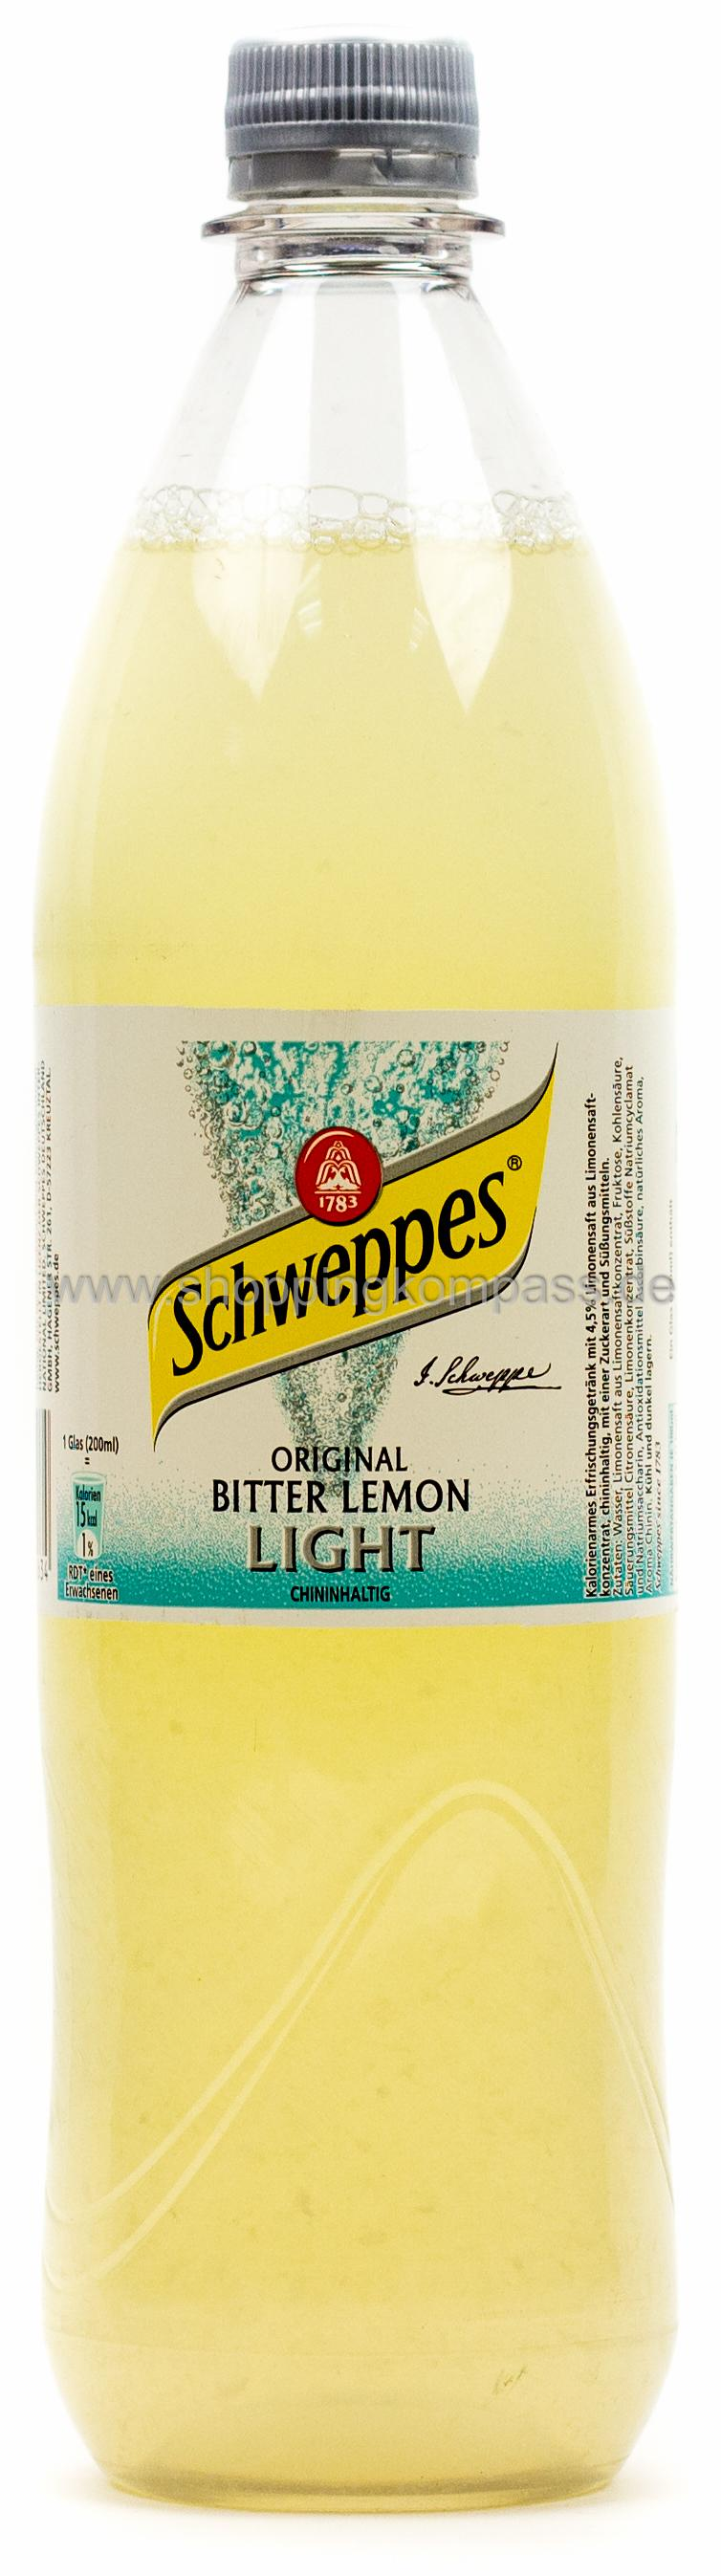 Schweppes Bitter Lemon Light 1 l PET Mehrweg